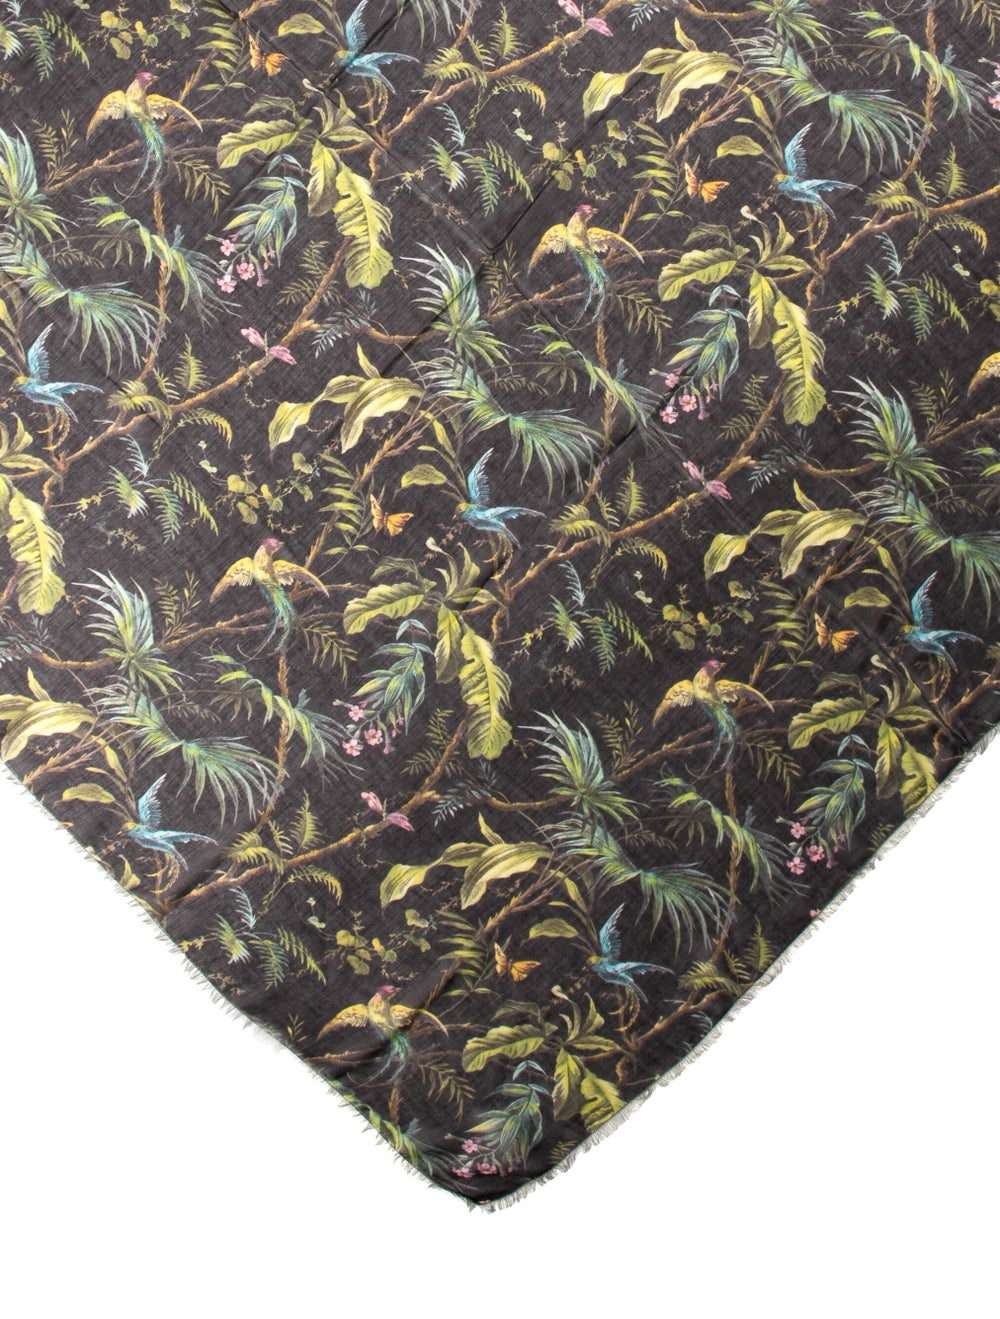 Gucci Wool-Blend Floral Scarf w/ Tags Black - image 2